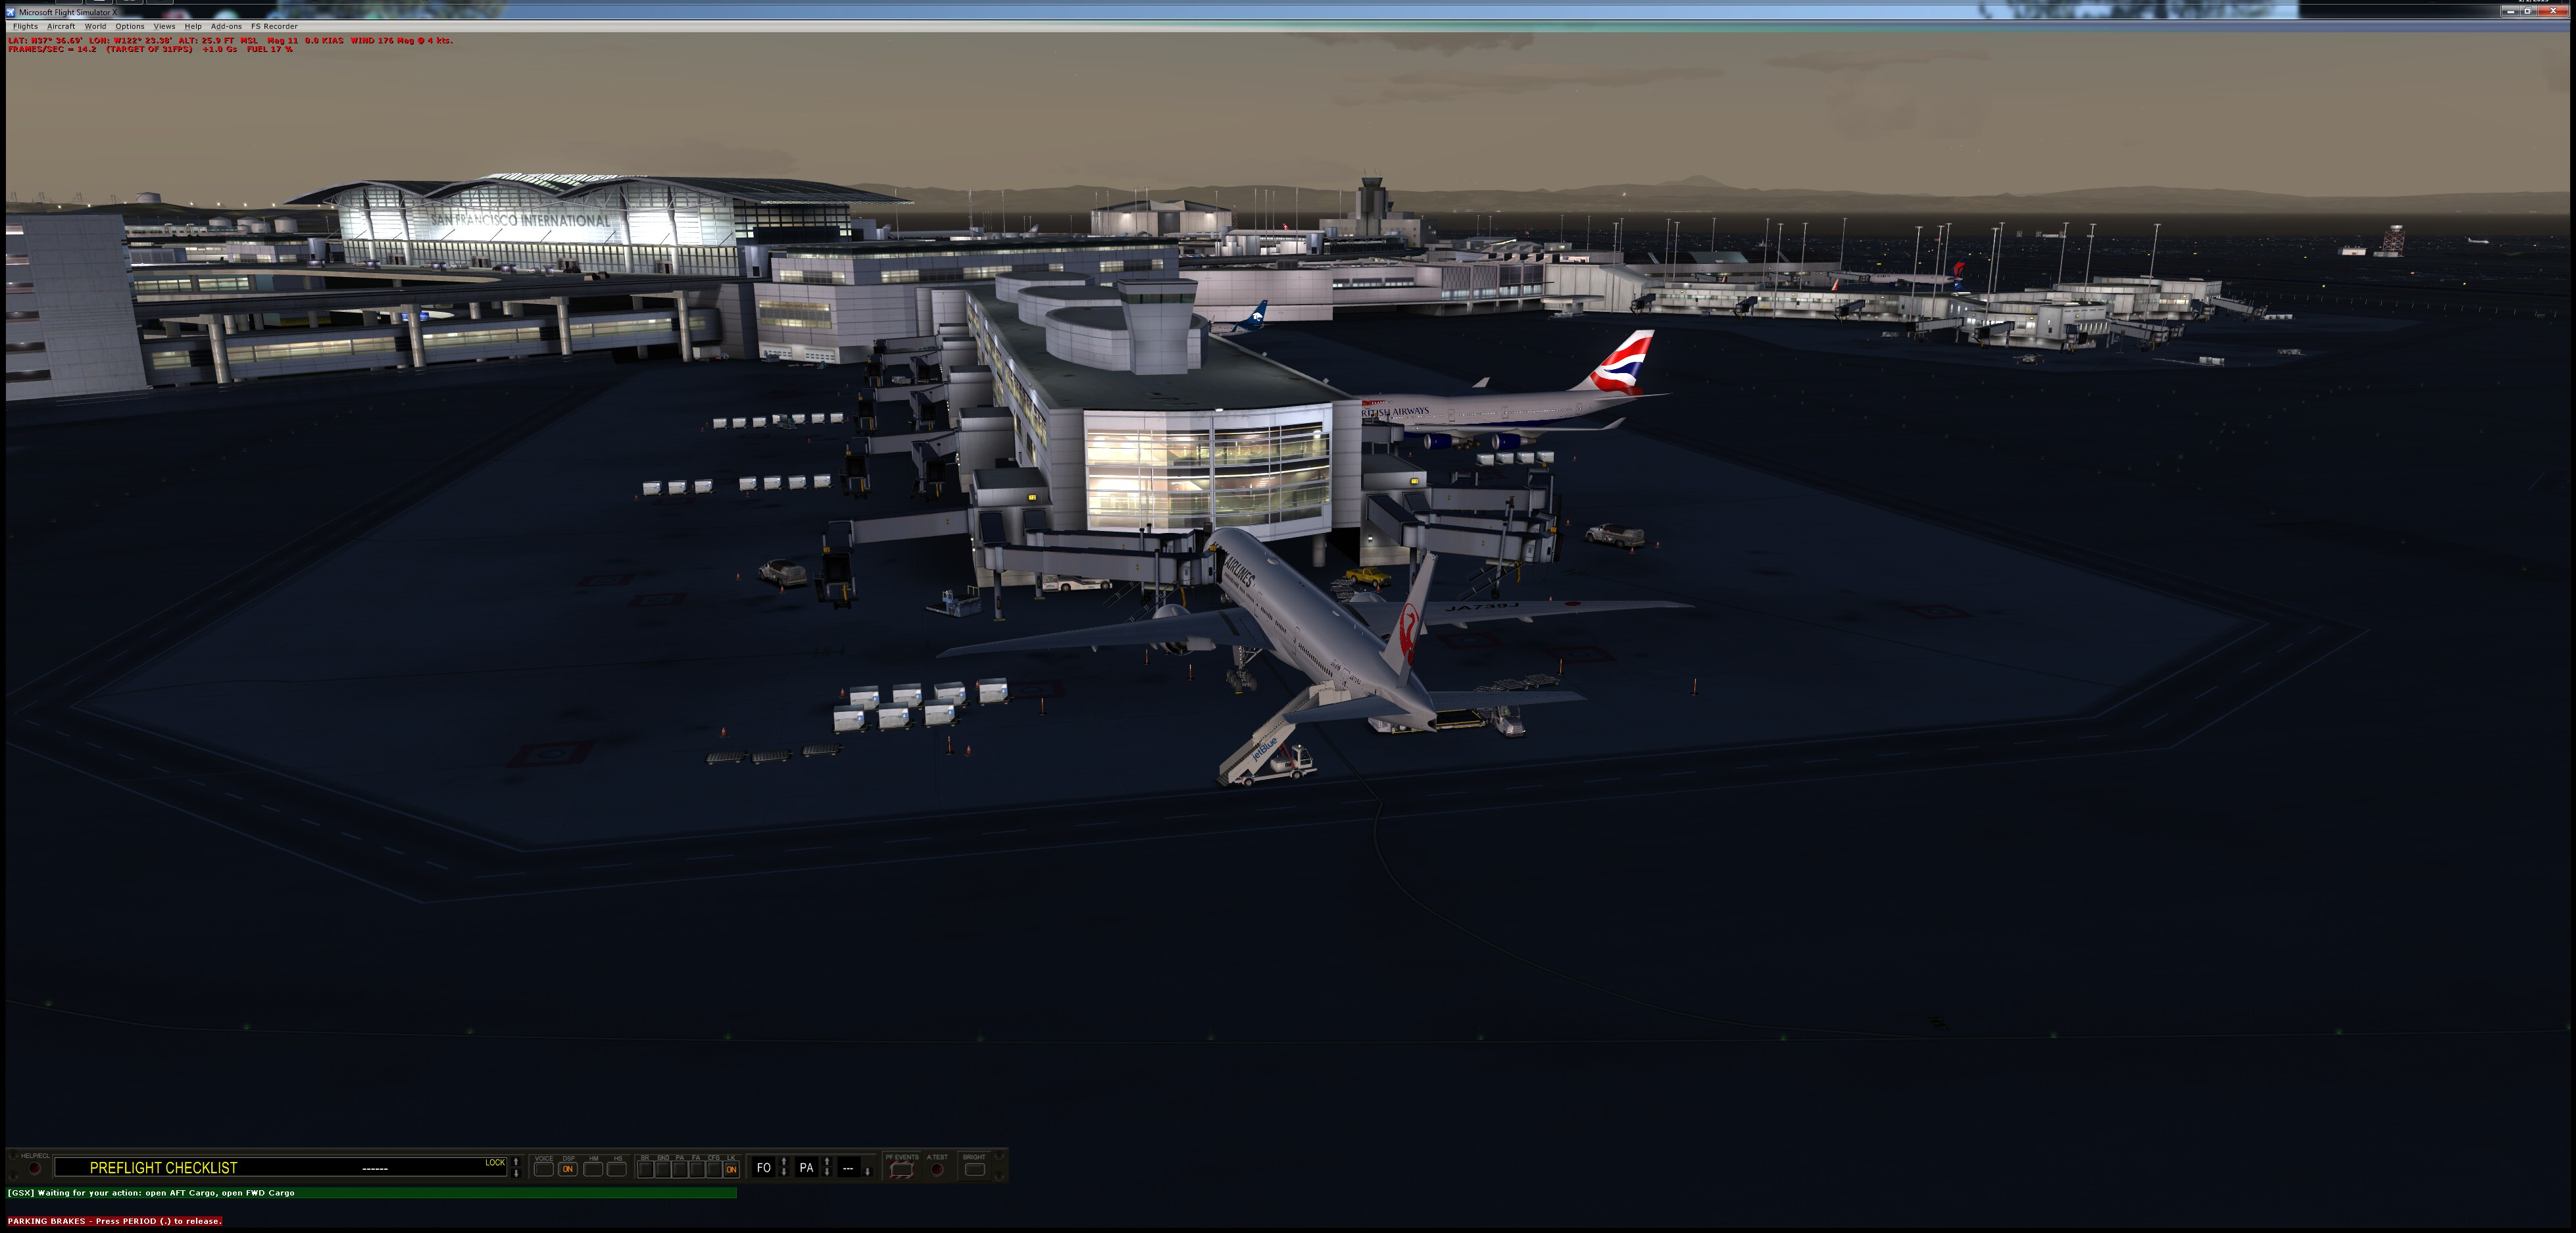 ScreenshotsRJTT-KSFO-46.jpg